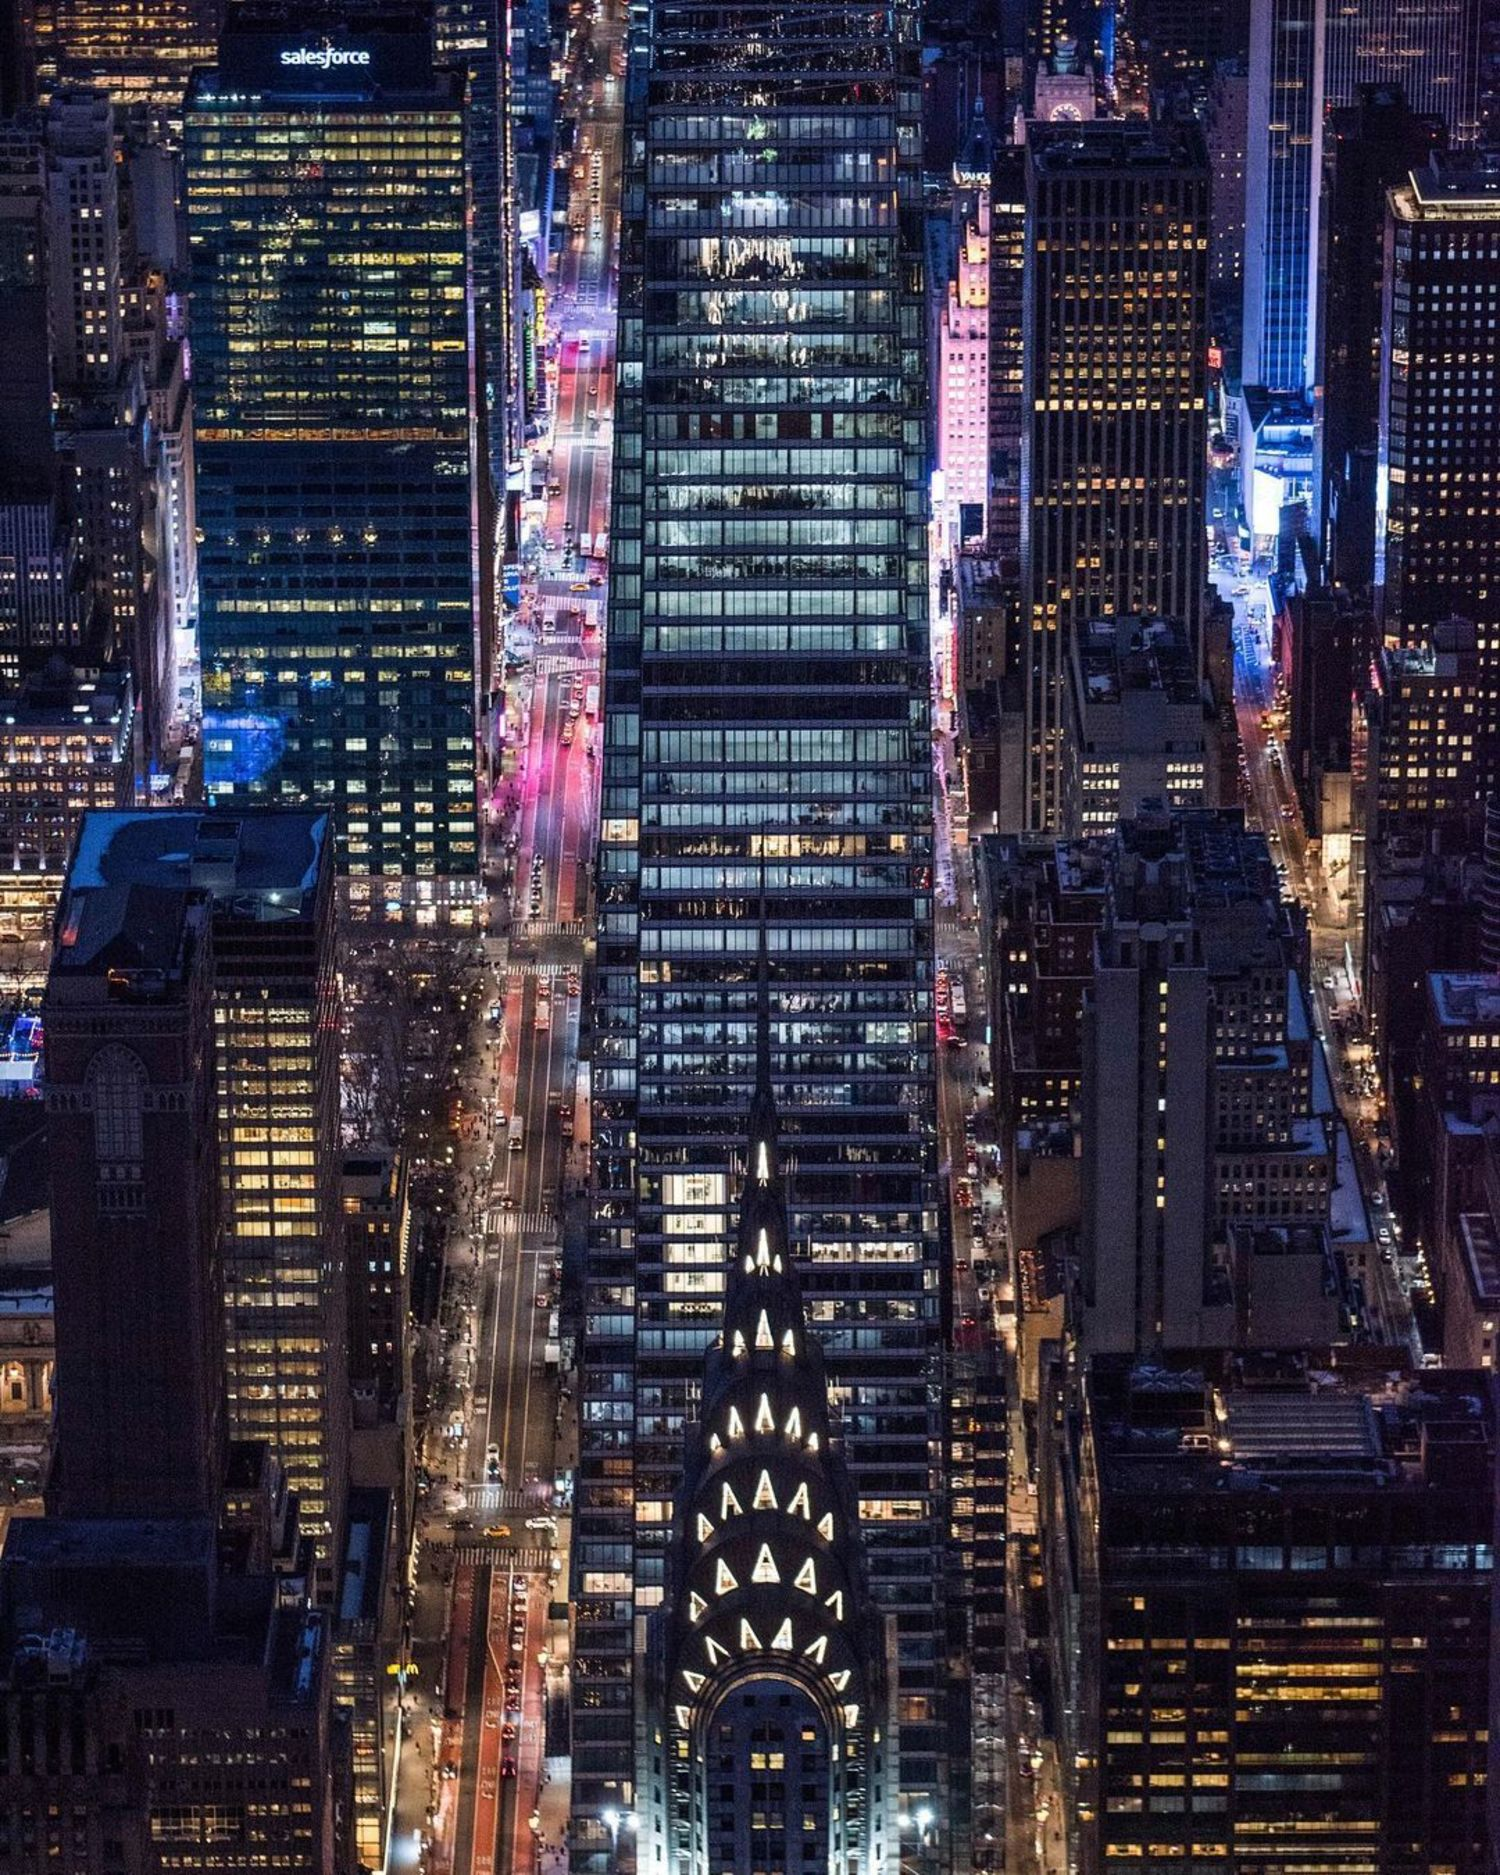 Chrysler Building, 42nd Street, & Times Square in Midtown, Manhattan